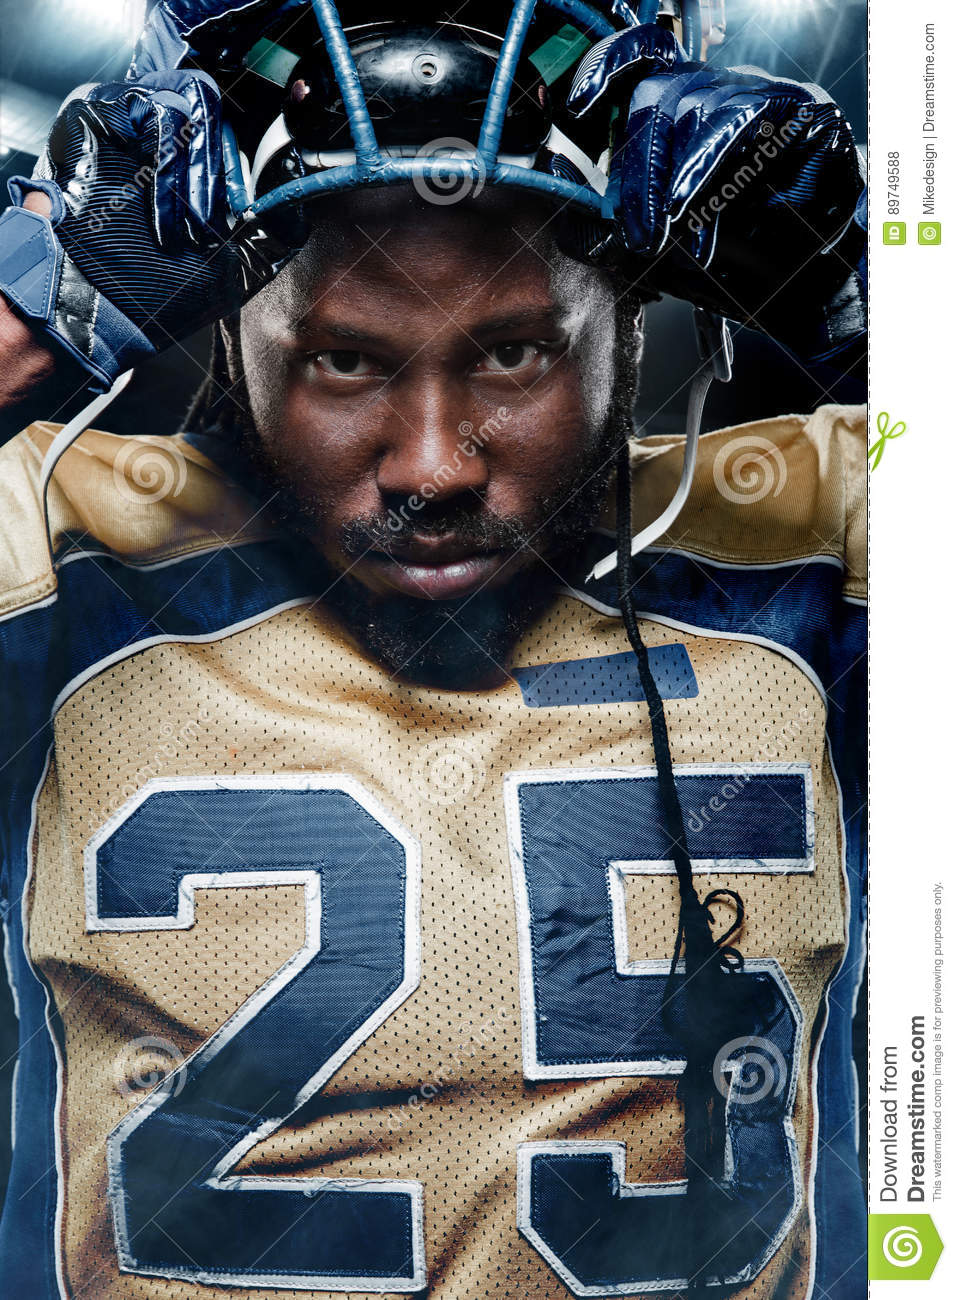 Colse-up portrait of american football player on stadium with lights on background